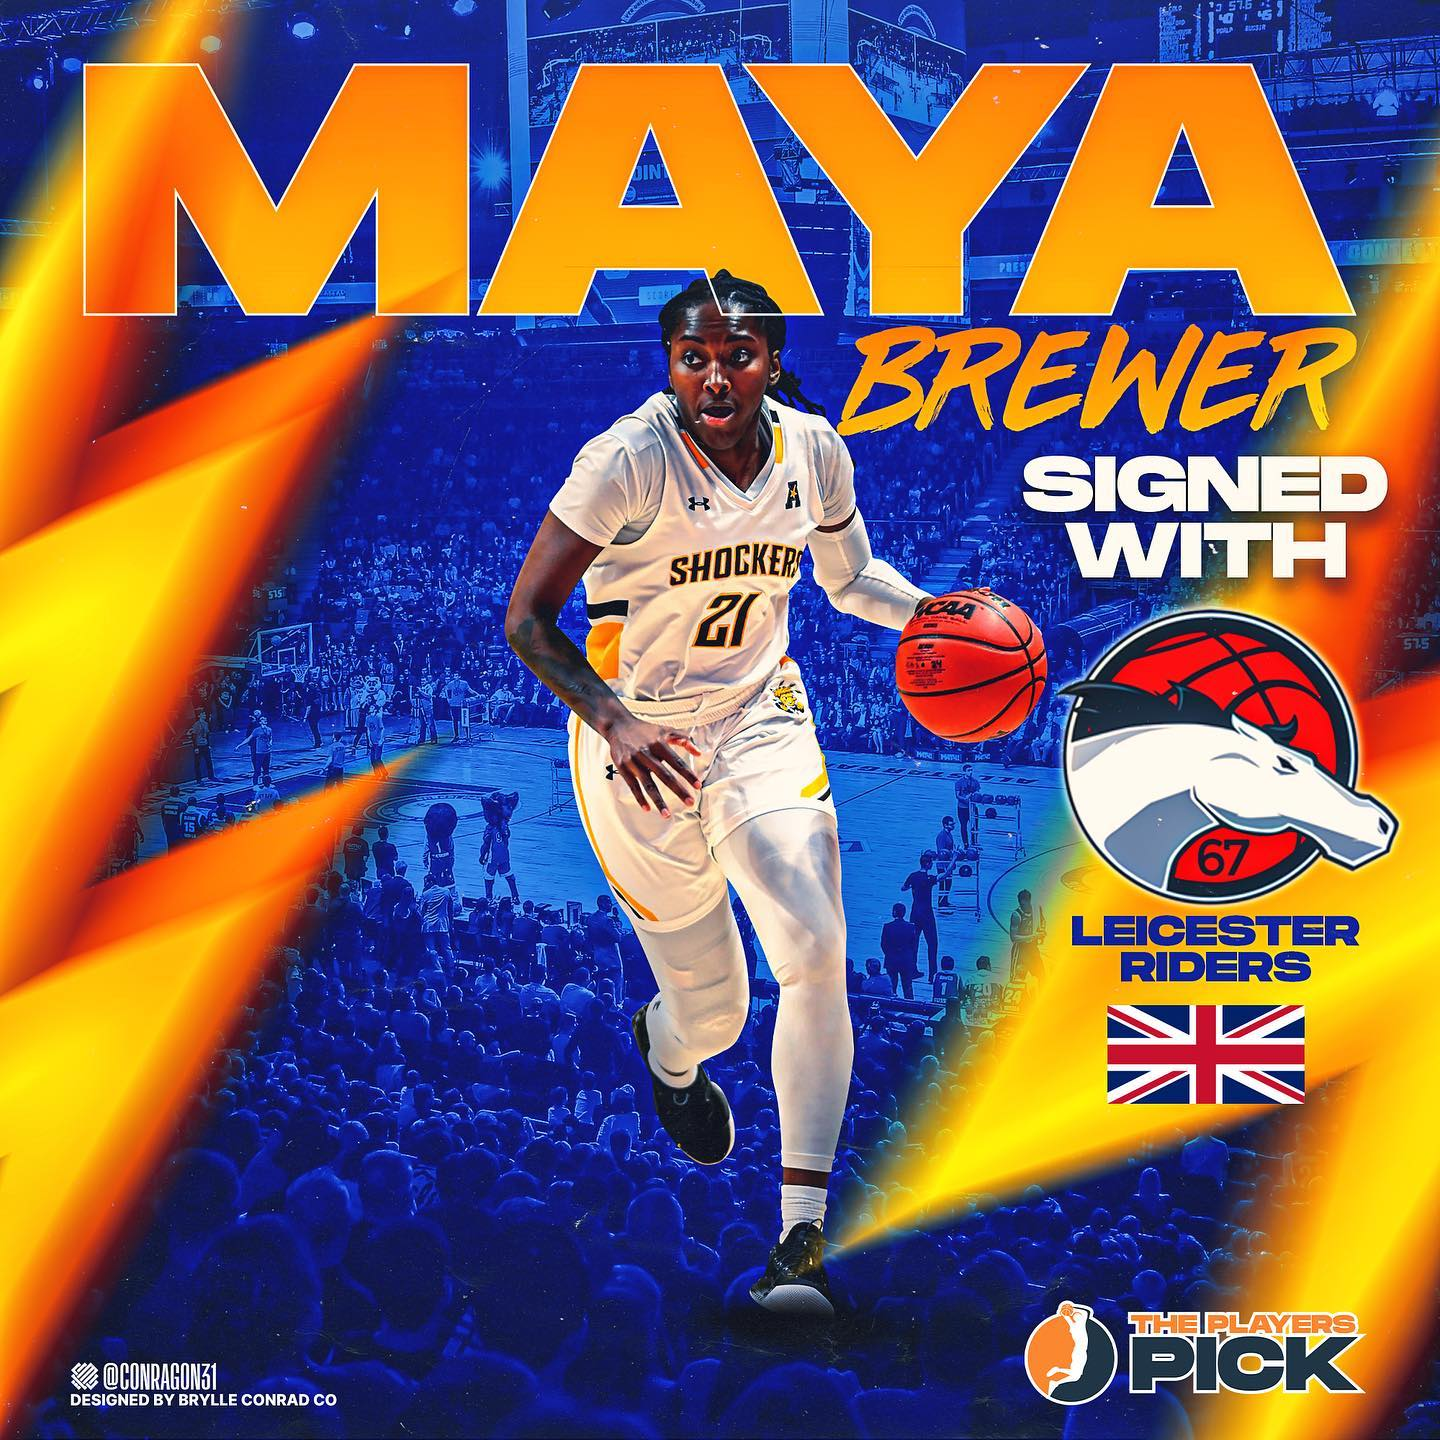 Maya Brewer signed with Leicester Riders in WBBL!